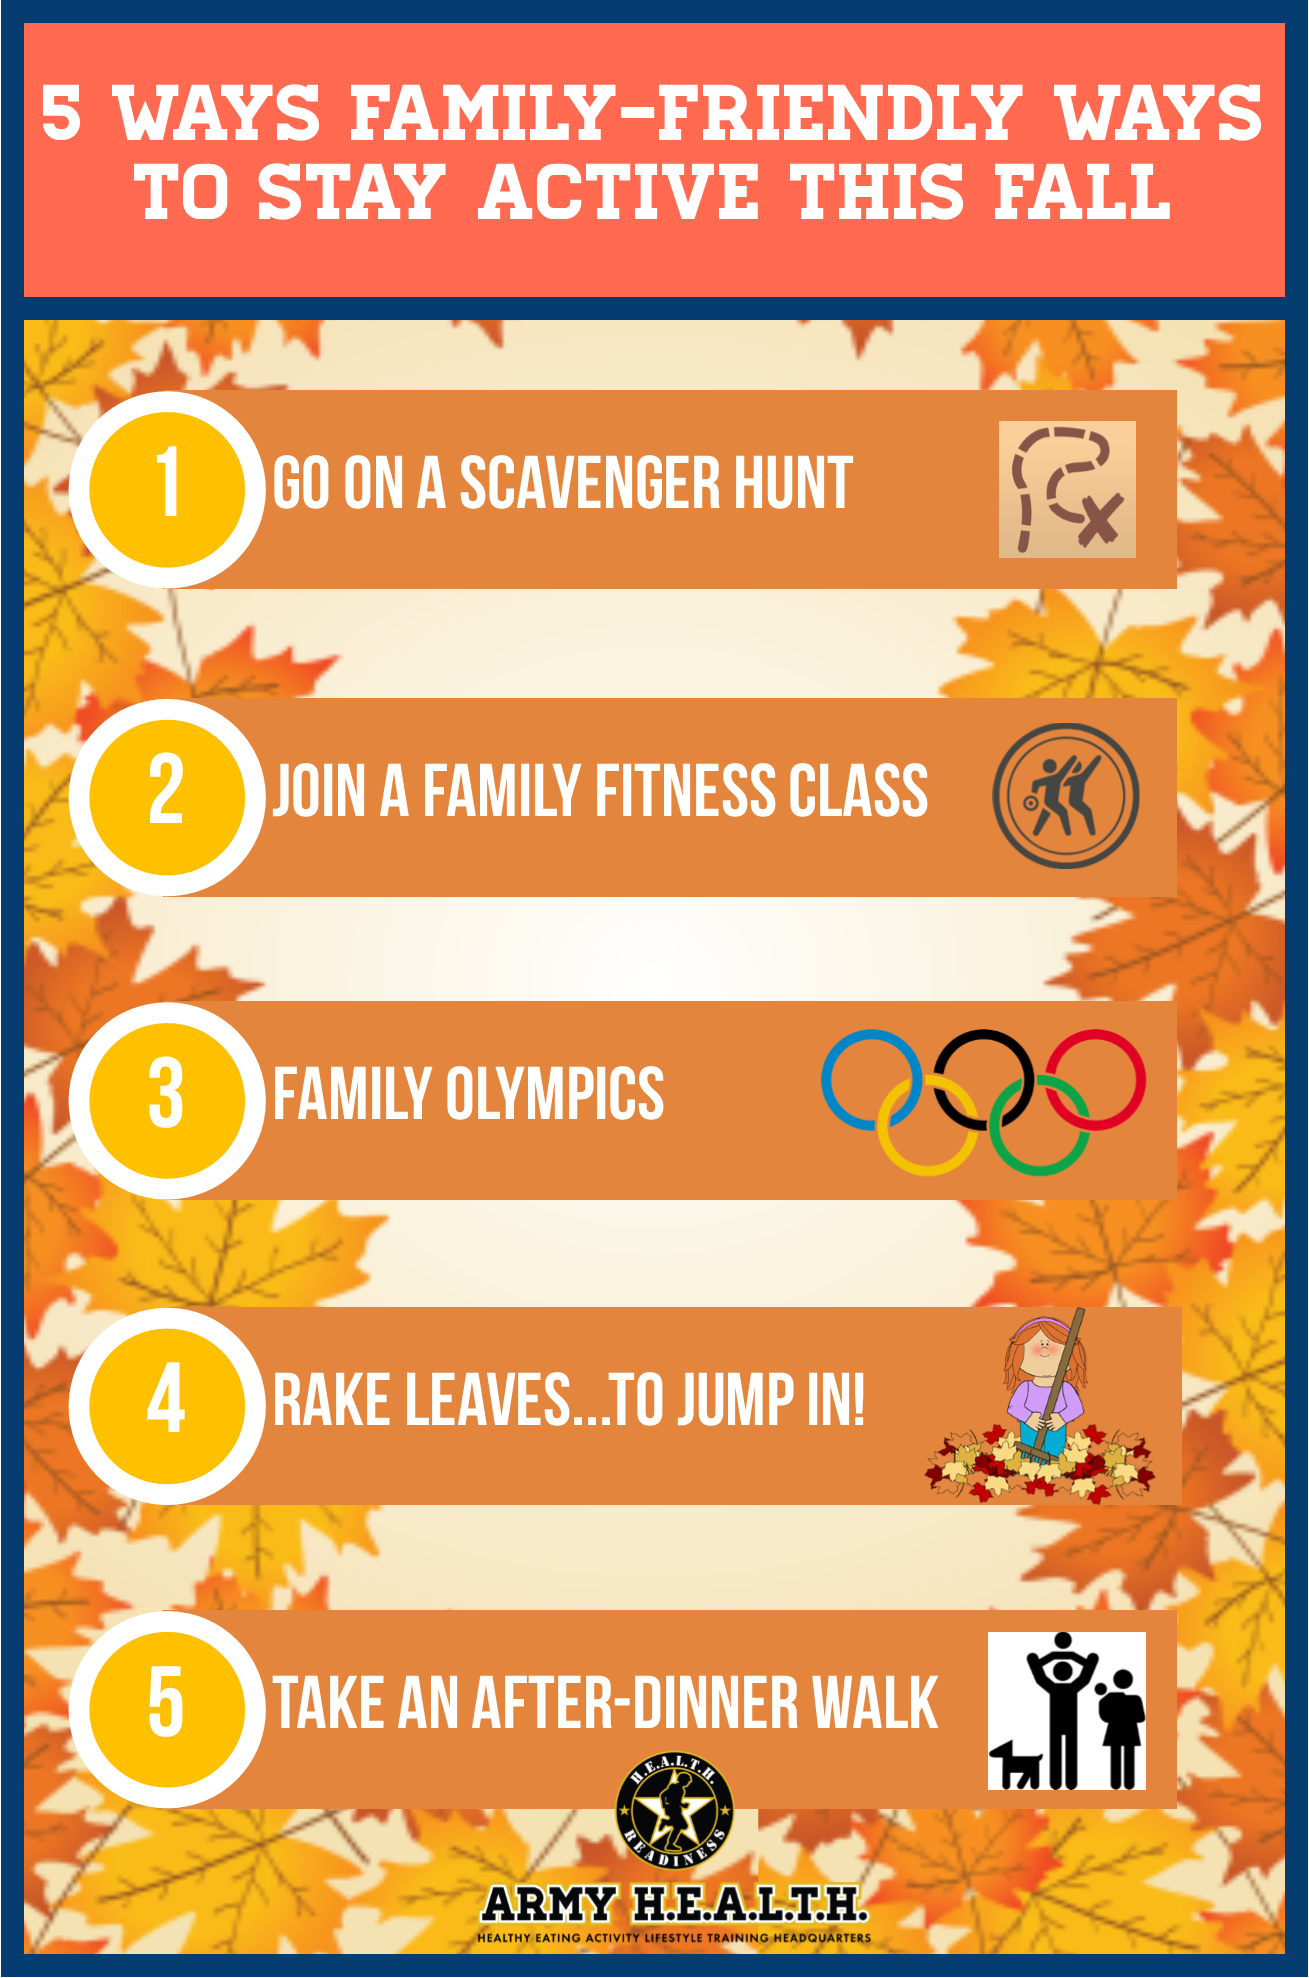 5 Ways Family-Friendly Ways to Stay Active this Fall